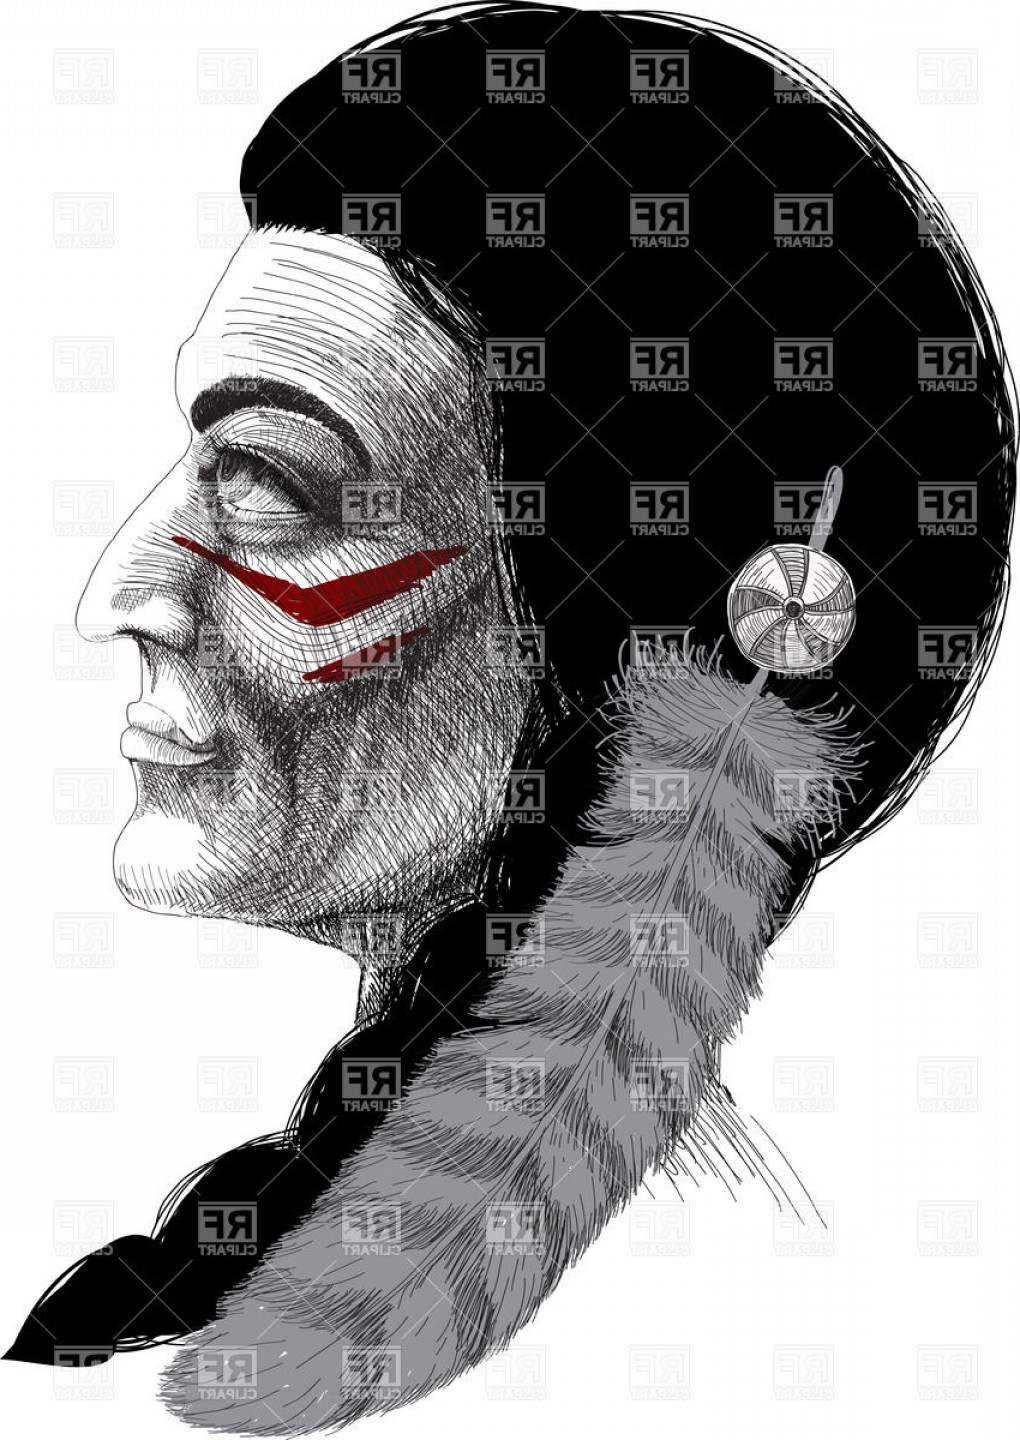 American Indian Chief Vector: Portrait Of Tribal Chief Of American Indian Warrior With A Feather In Hair Vector Clipart